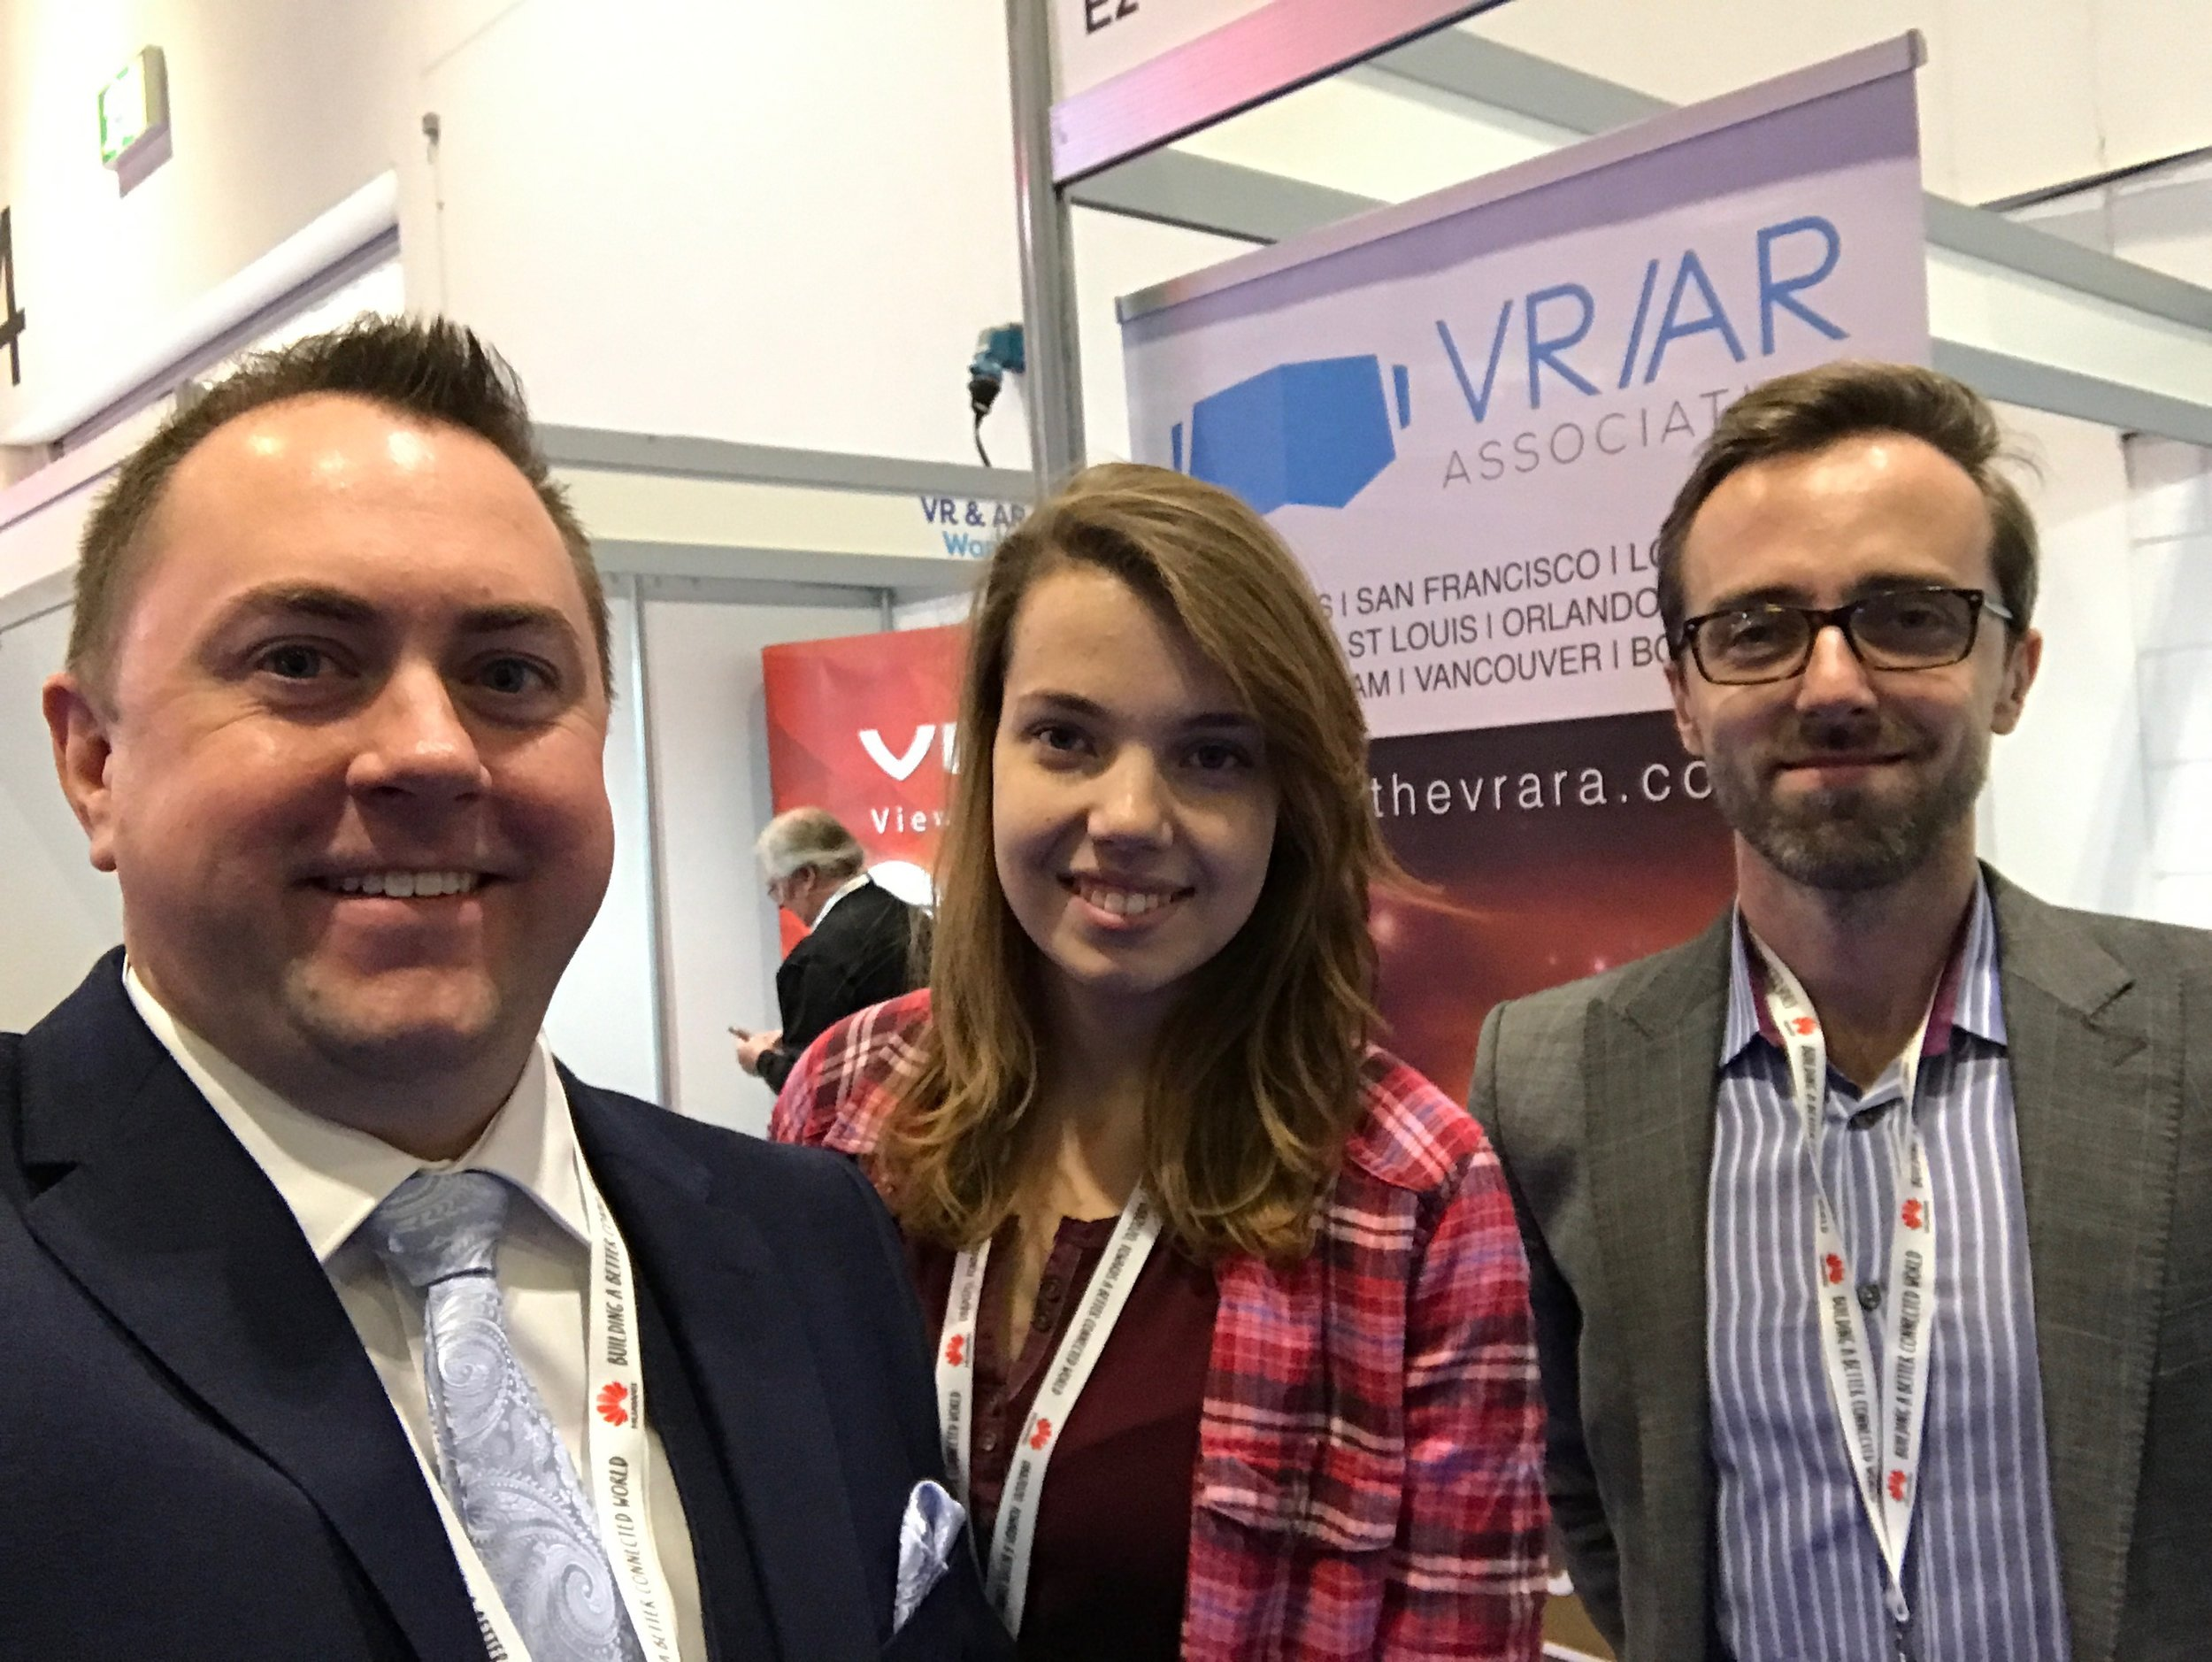 Nathan, Ana, and Kris at the VRARA booth